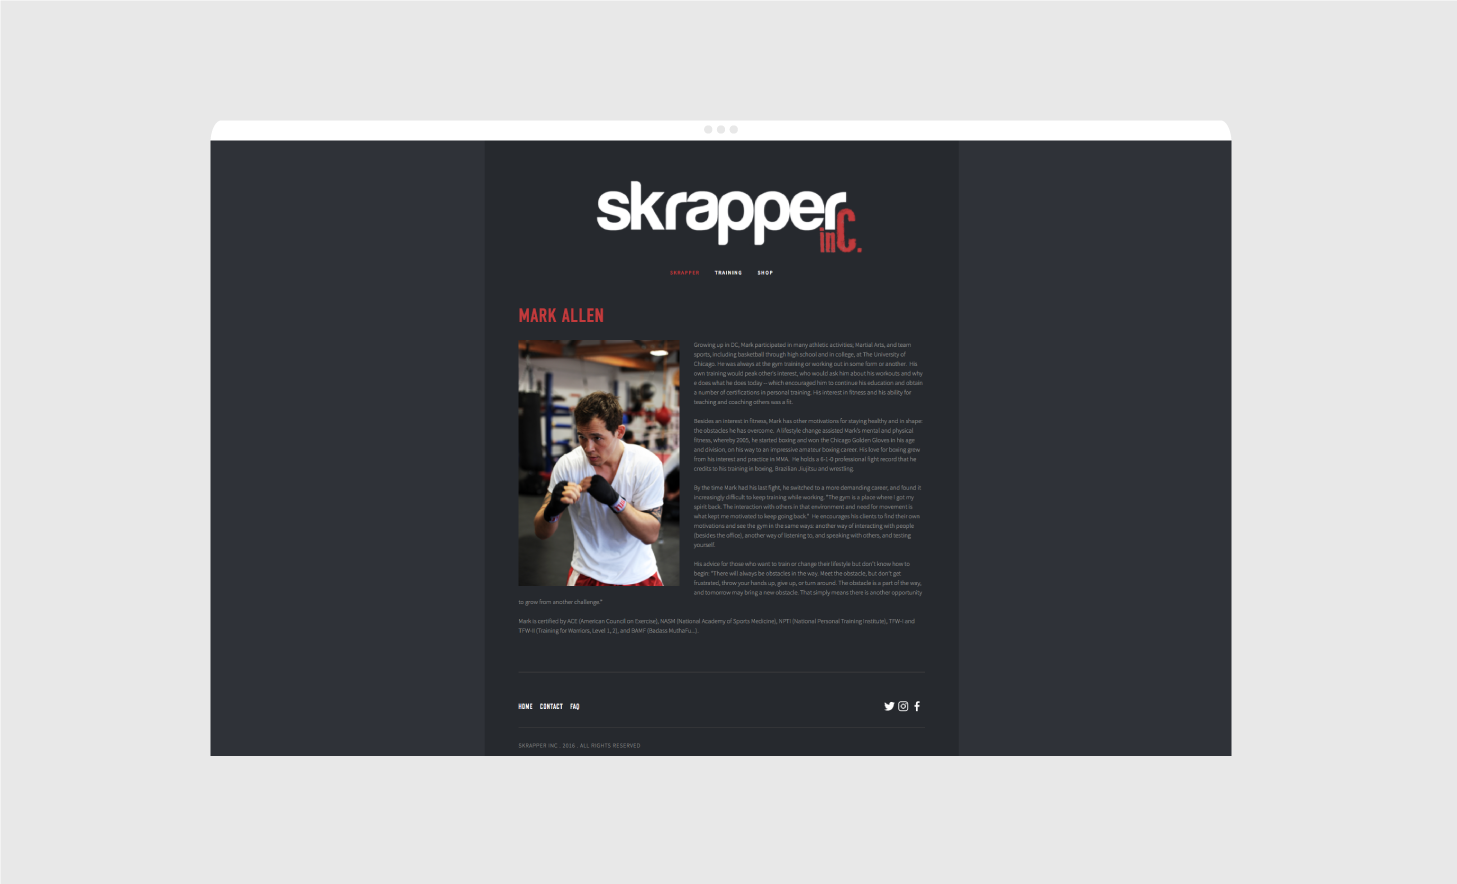 Skrapper-Chicago-Mark Allen-Achromanix-Jaimie Lake-2.png